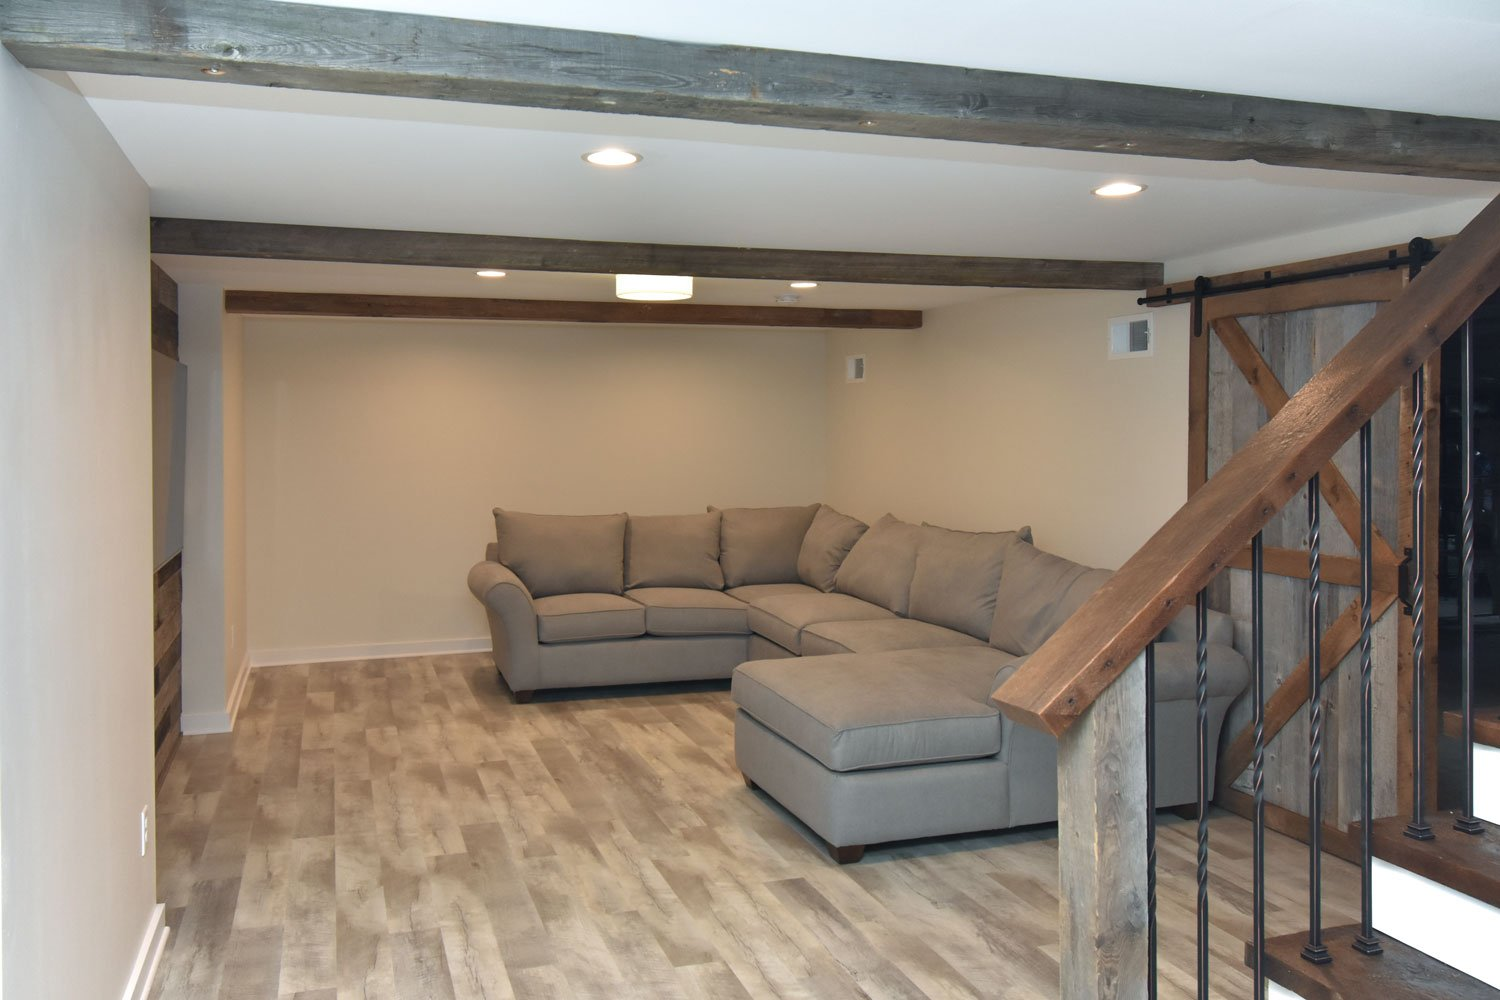 Basement bar remodel with sliding barn door